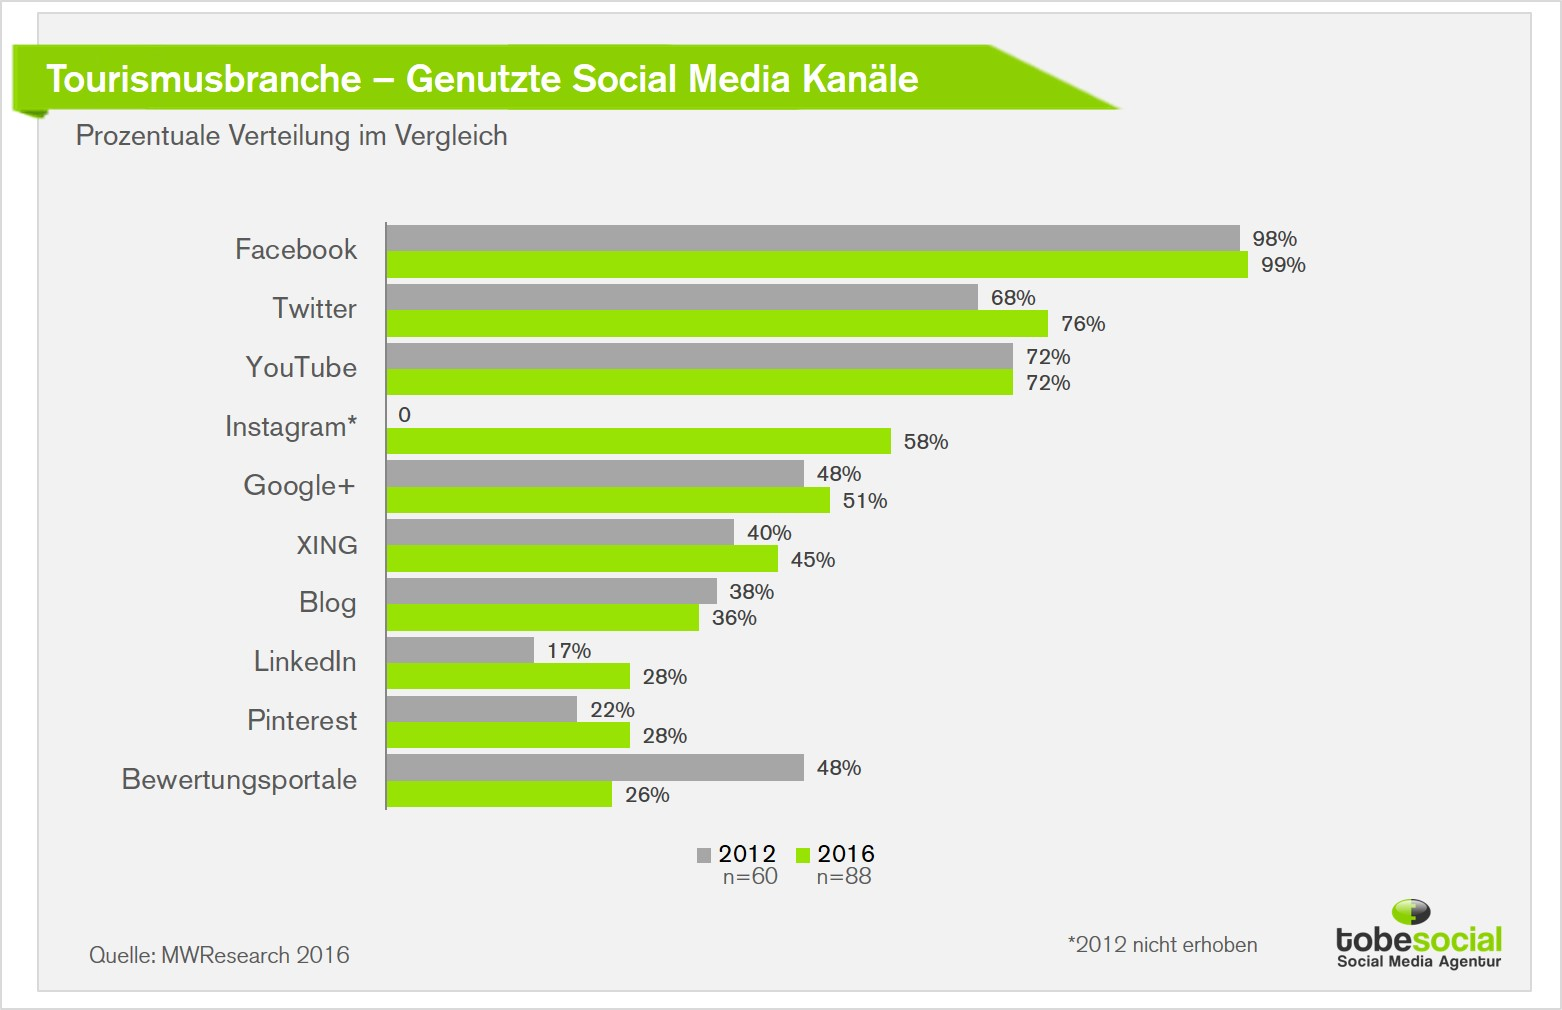 nutzung-social-media-tourismus-marketing-social-media-kampagne-studie-influencer-marketing-facebook-360-video.jpg